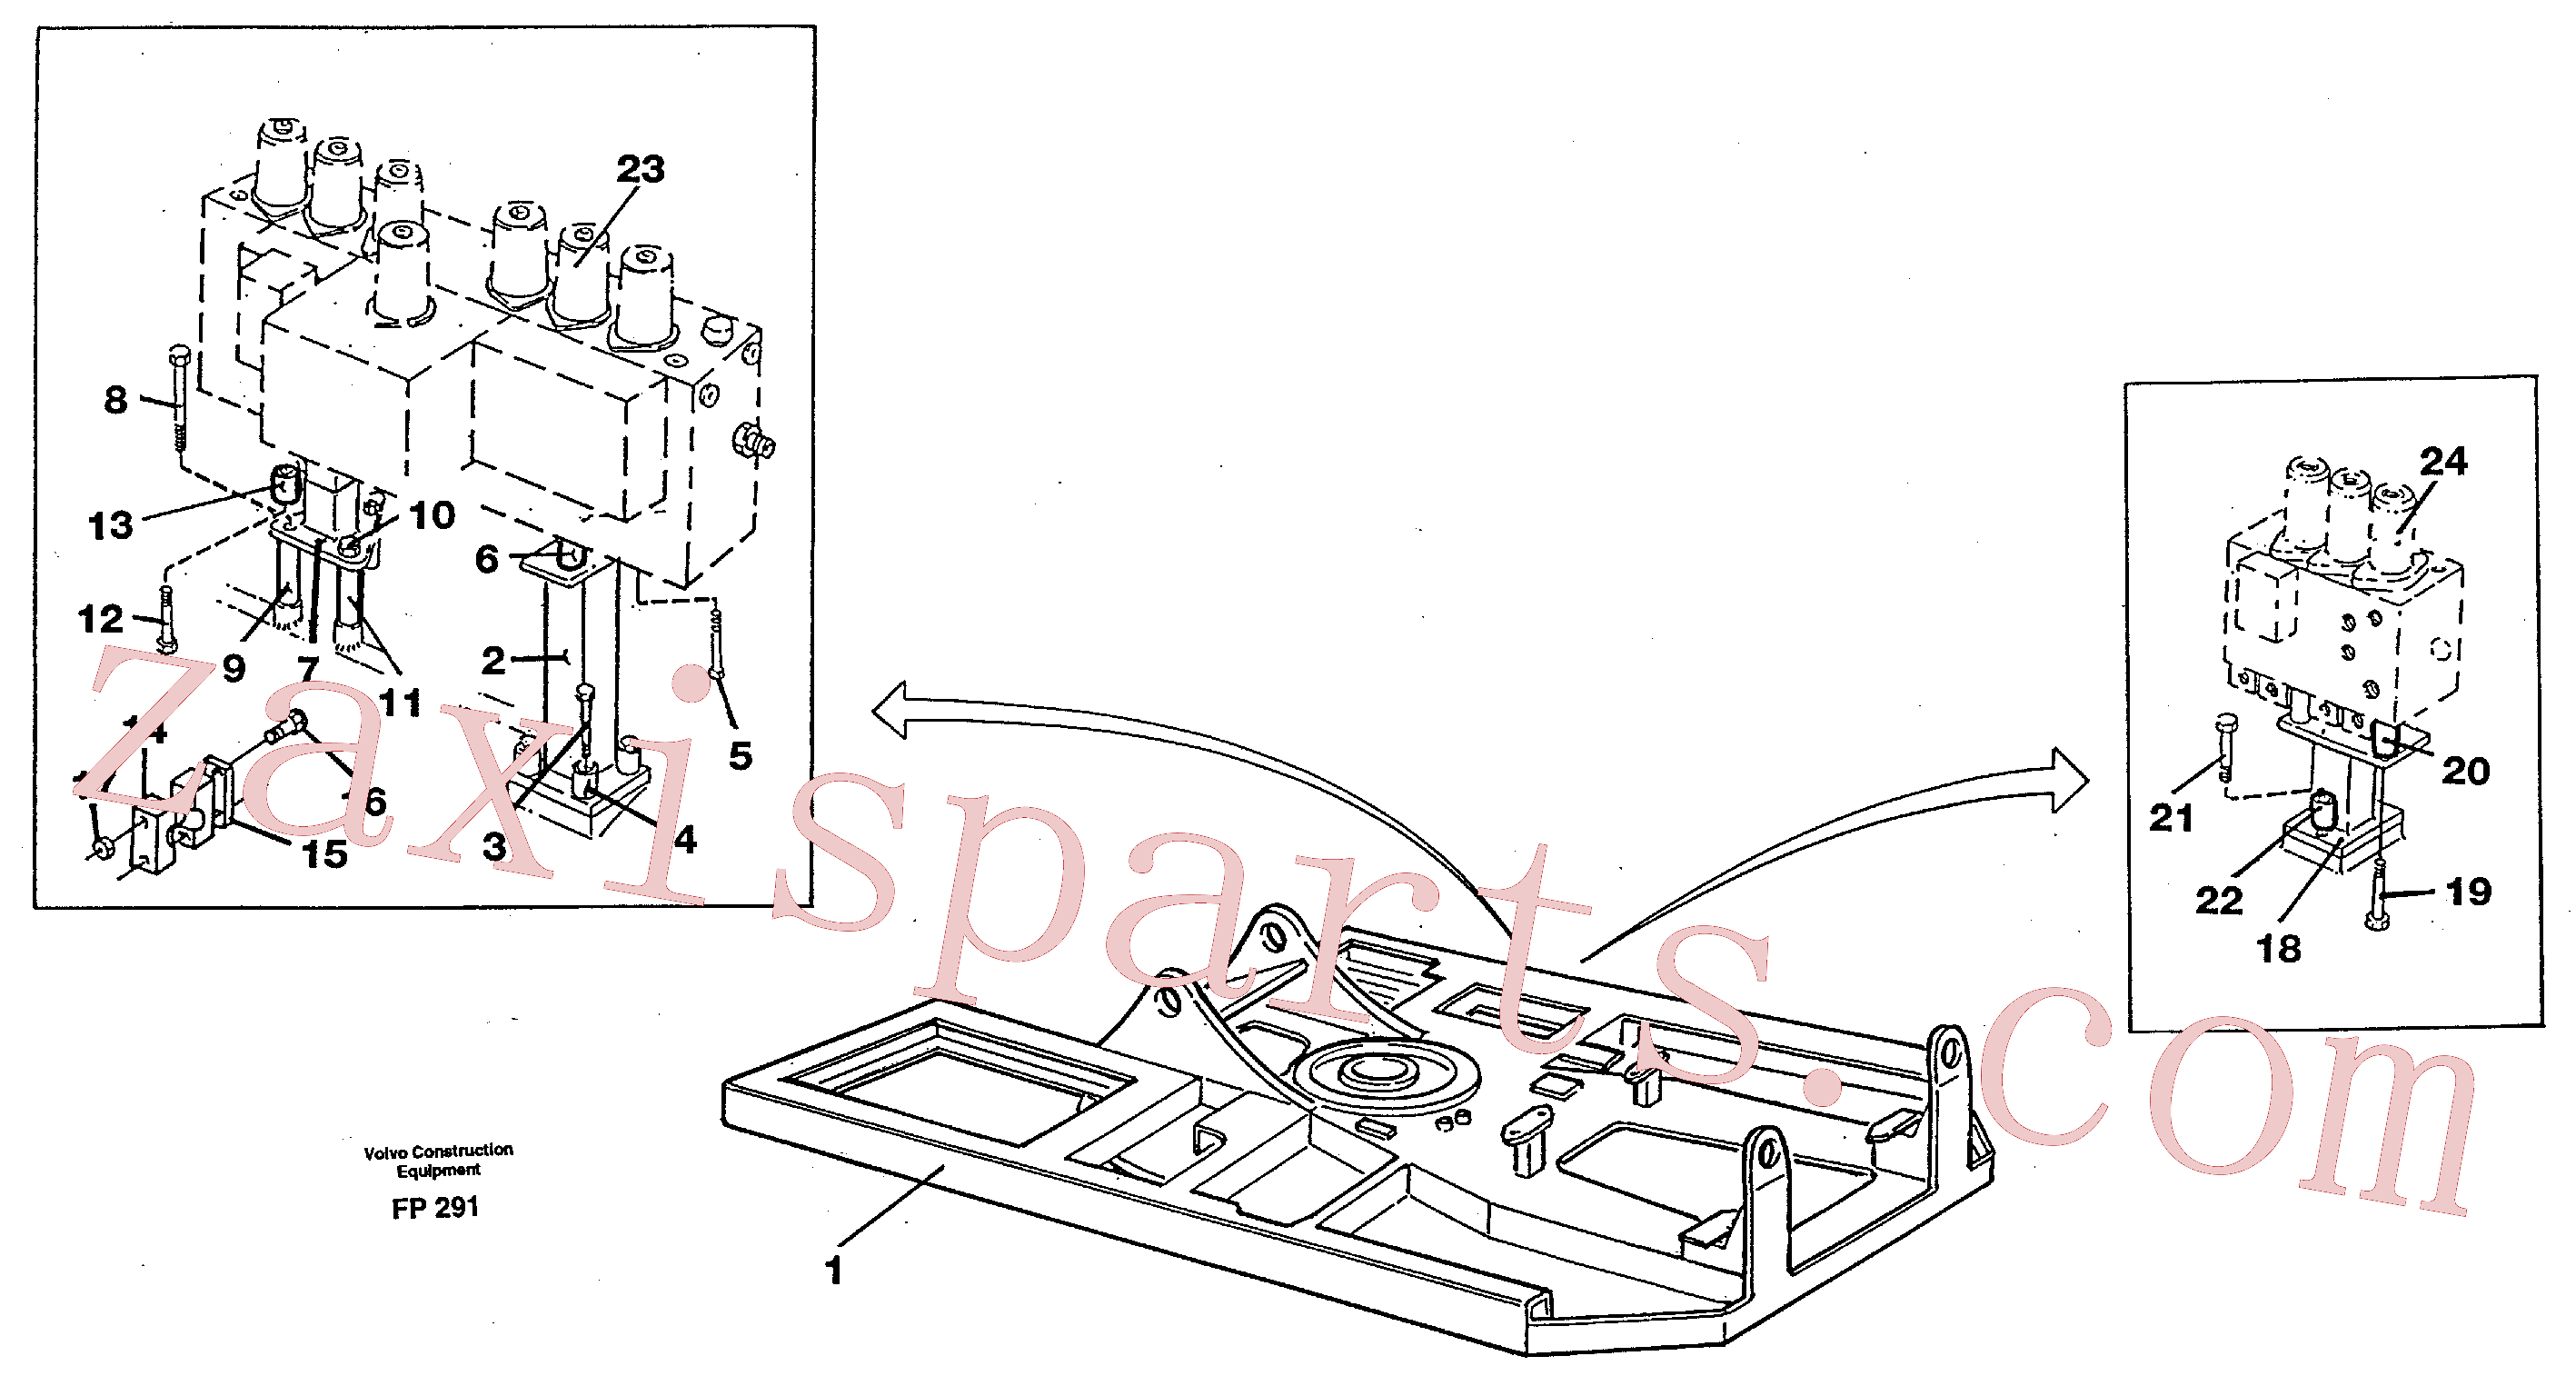 VOE970983 for Volvo Superstructure(FP291 assembly)